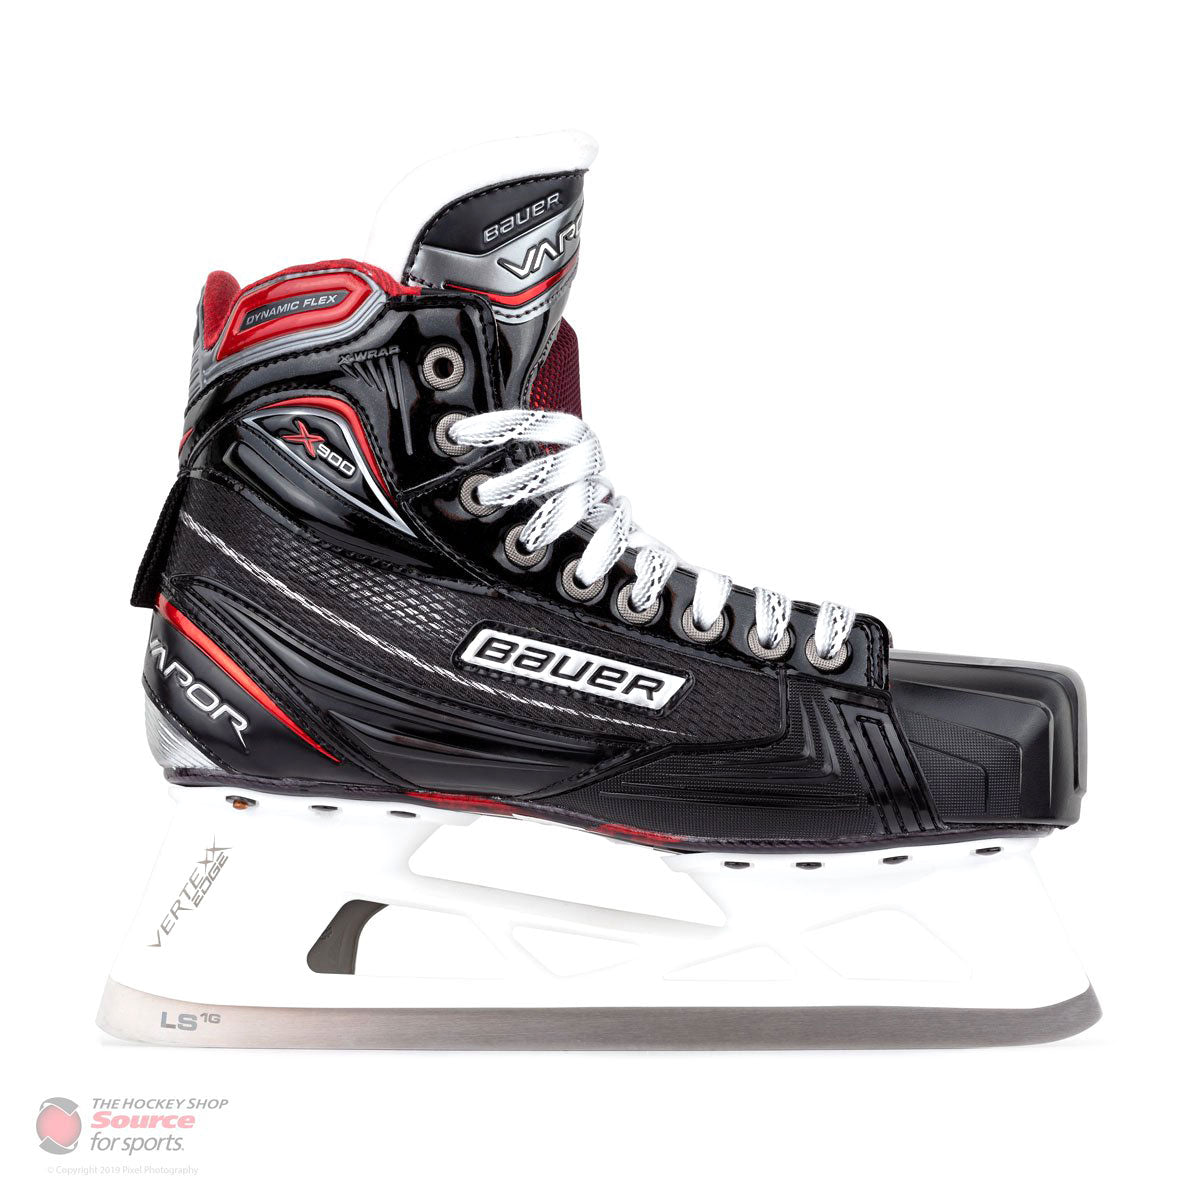 Bauer Vapor X900 Junior Goalie Skates